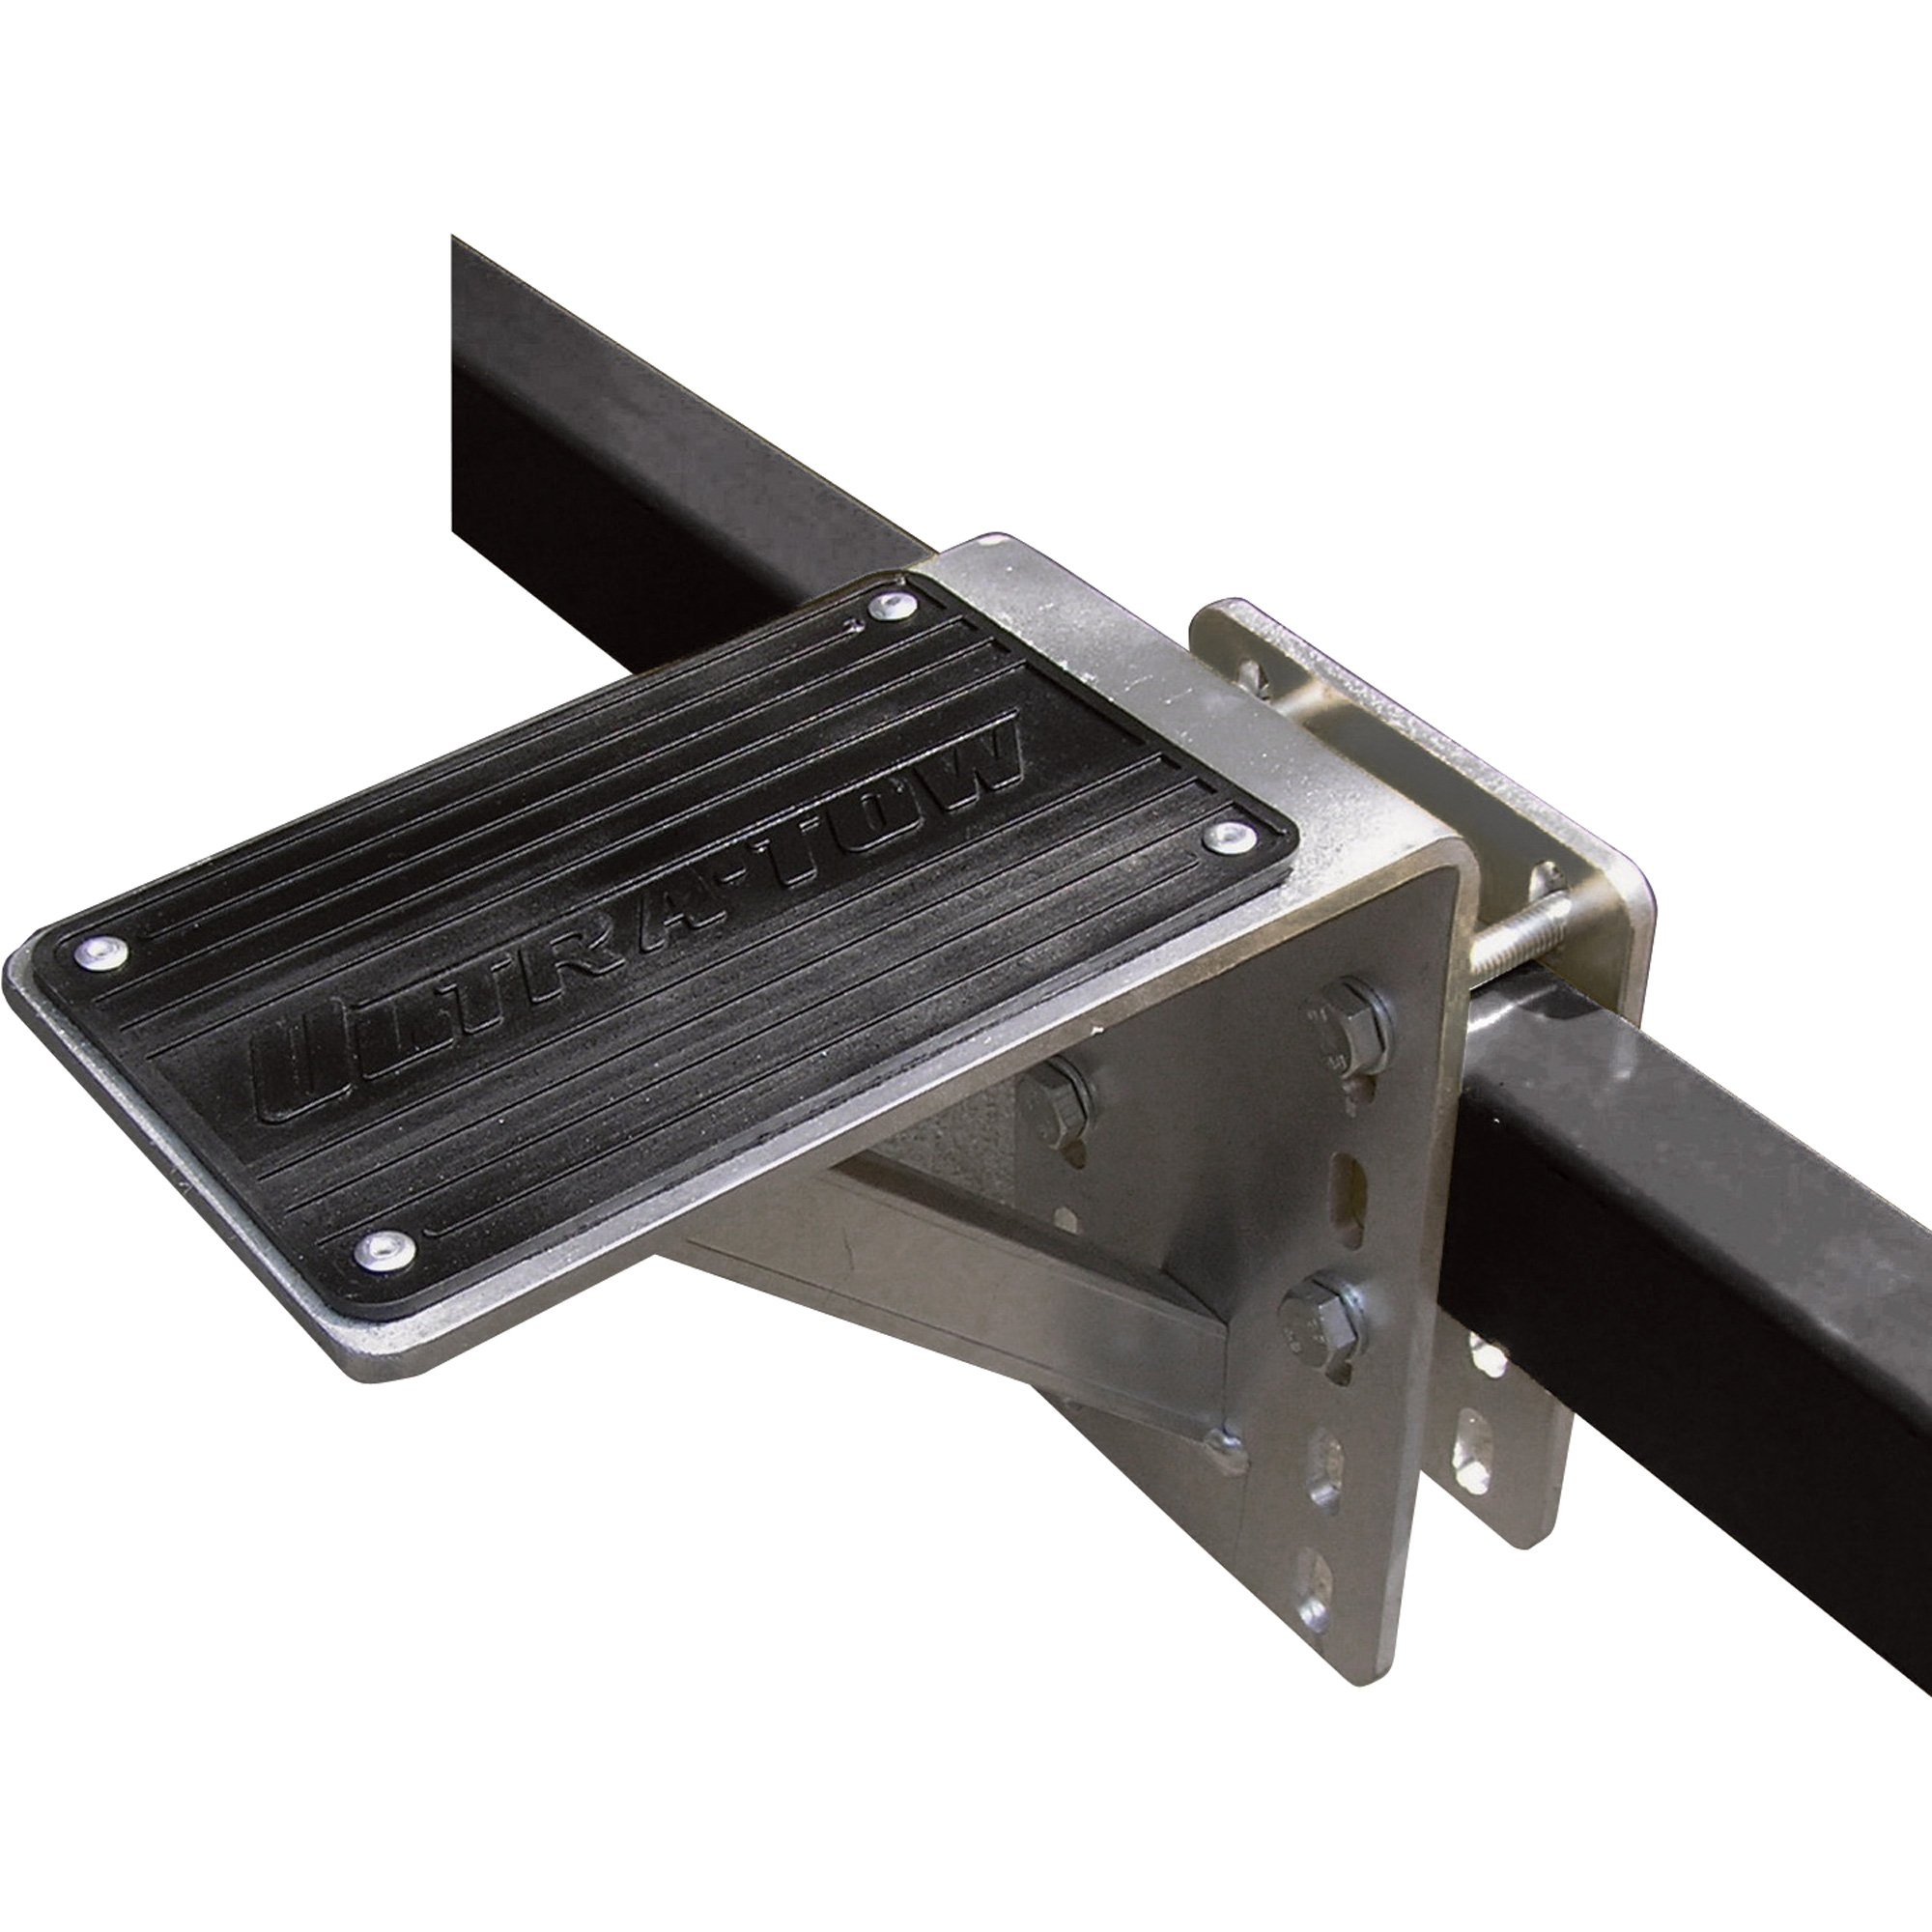 Ultra-Tow Universal Aluminum Trailer Step, Model Number FTF-01ATS by Ultra-Tow